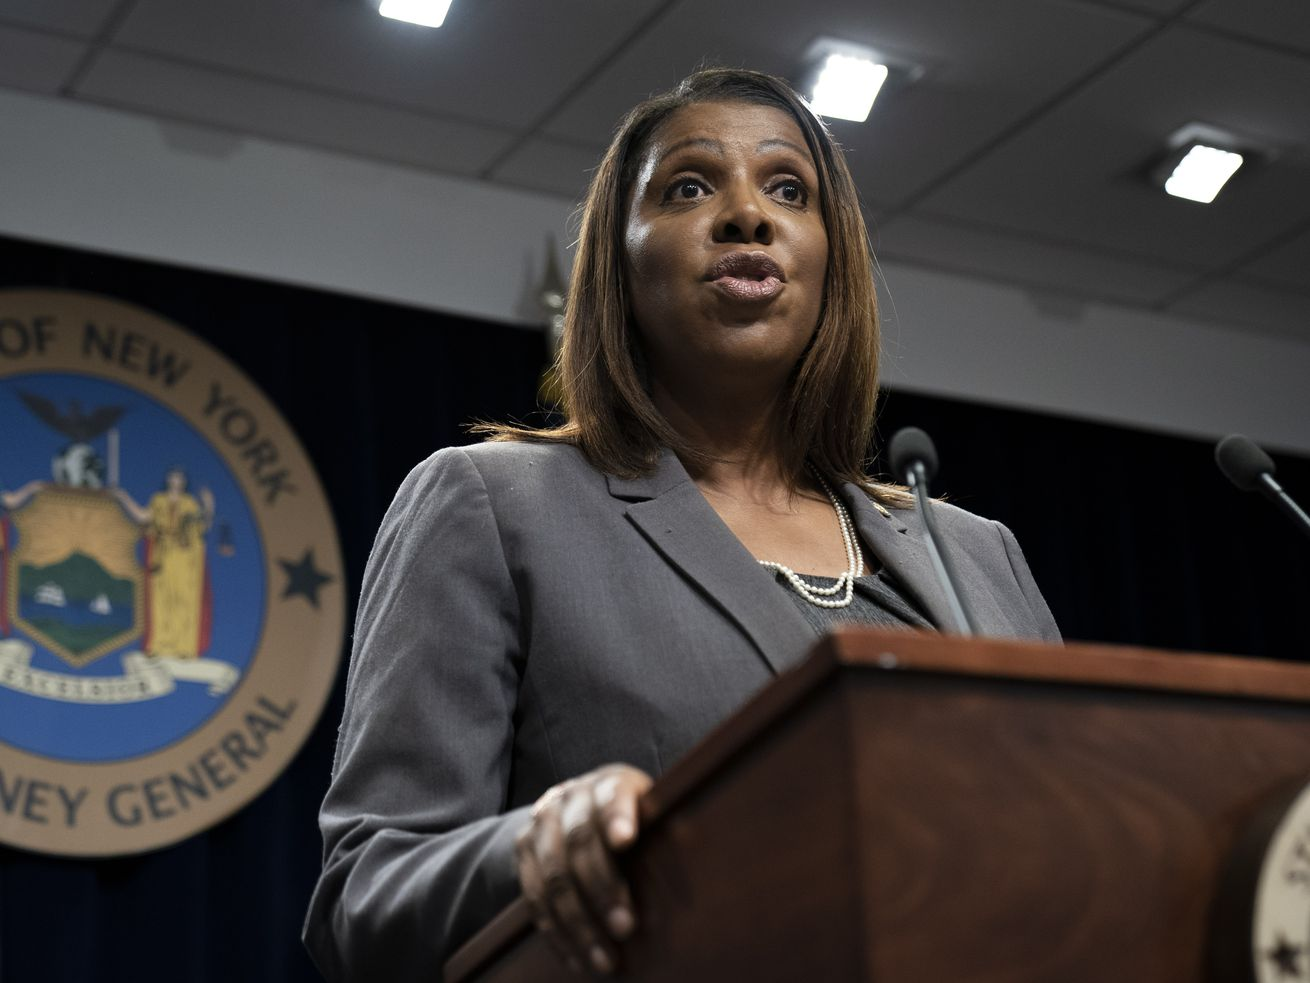 New York State Attorney General Letitia James speaking at a rostrum.